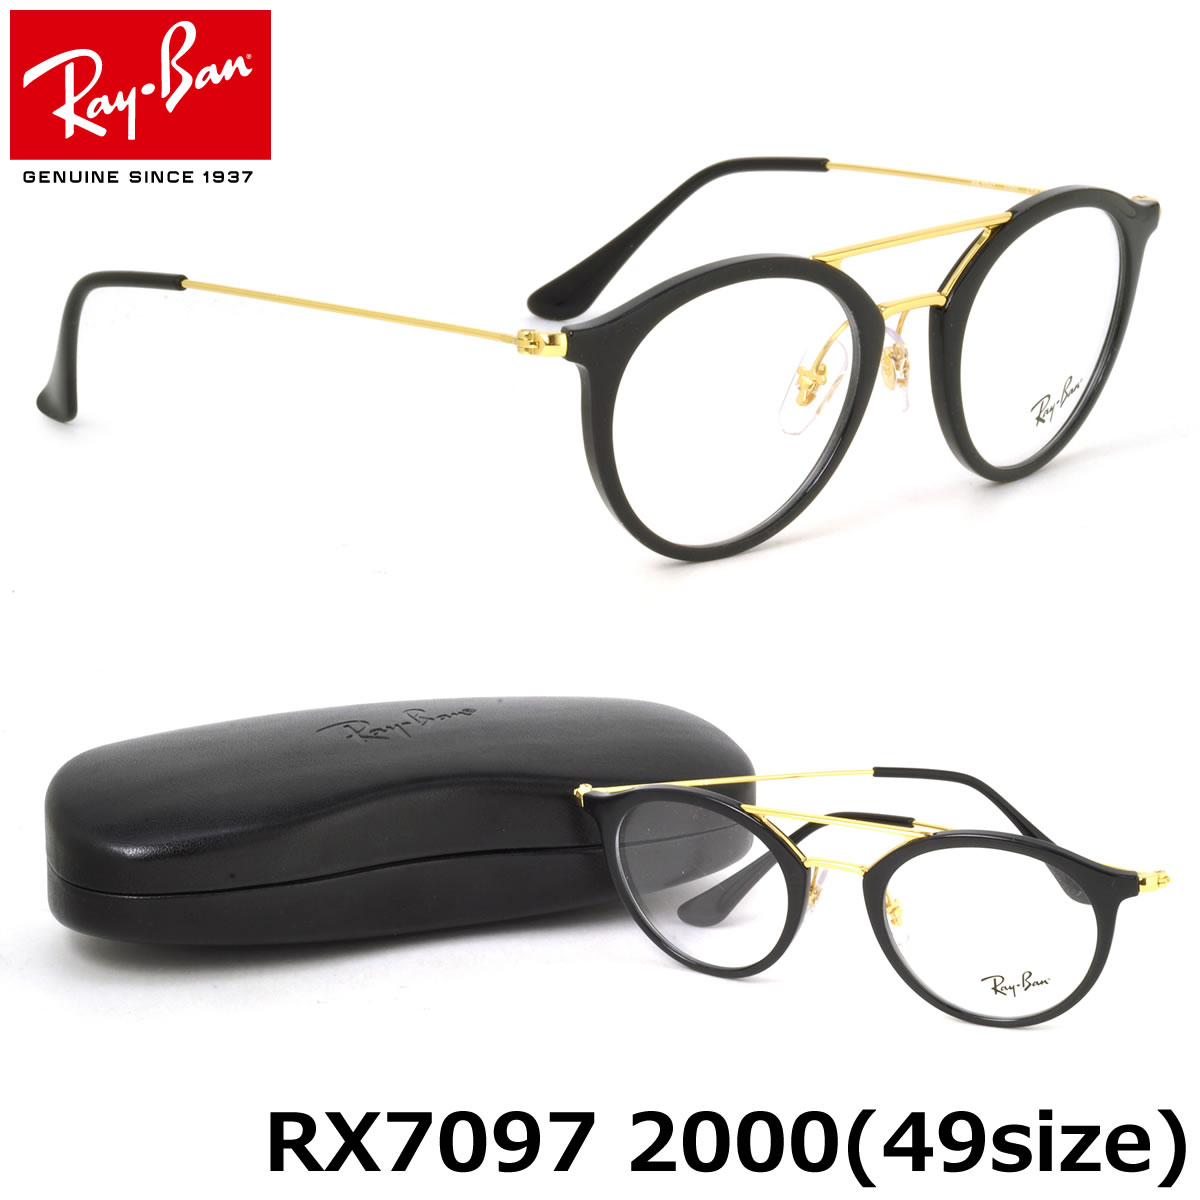 c529765f08 Ray-Ban glasses frame Ray-Ban RX7097 2000 49 size two bridge round-maru  glasses frame Ray-Ban RAYBAN men ...